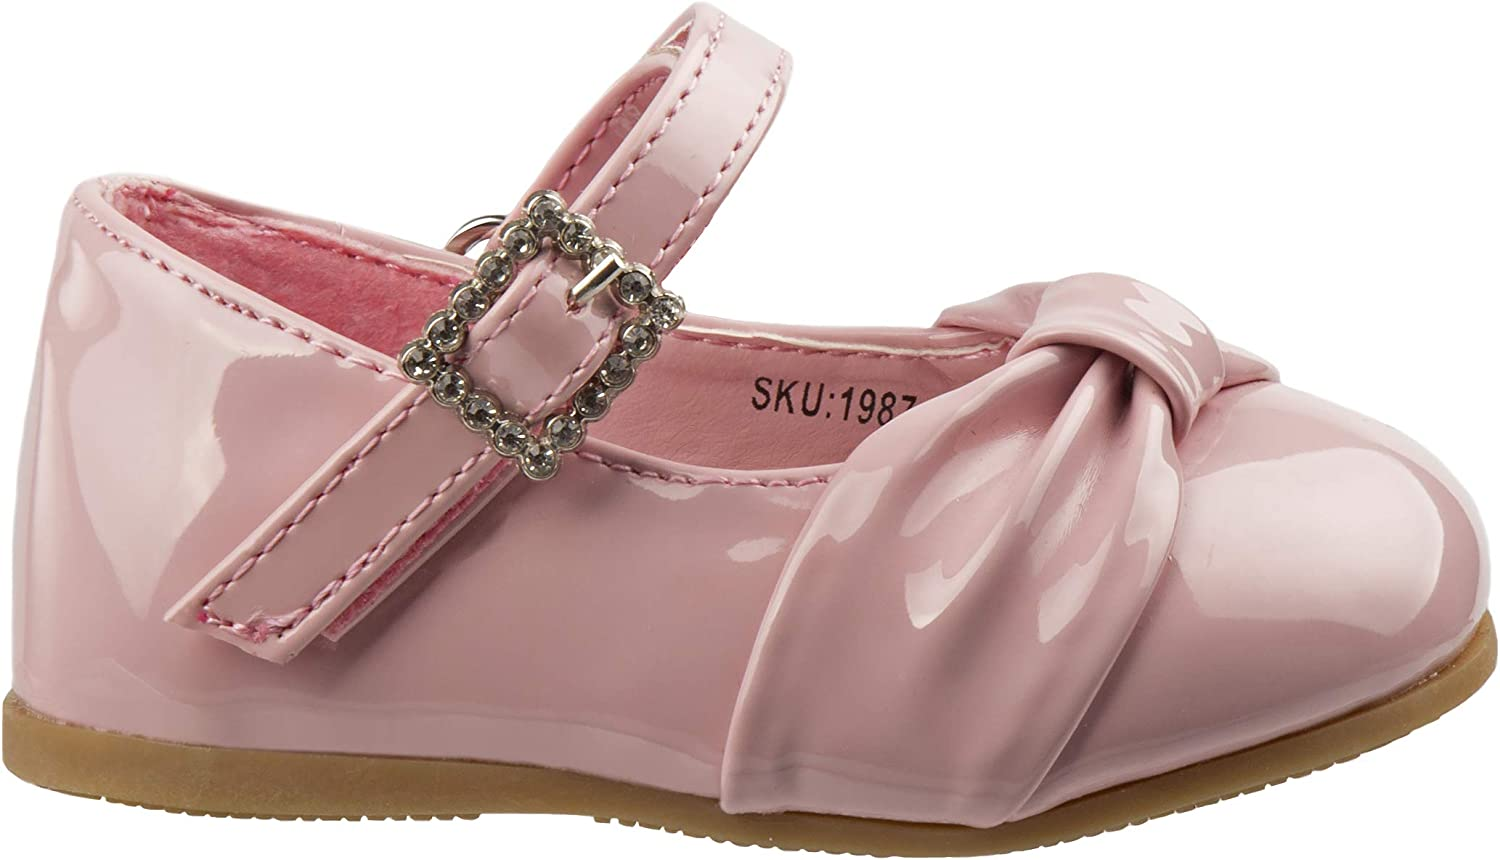 Infant//Toddler Josmo Baby Girls Dressy Shoe with Bow